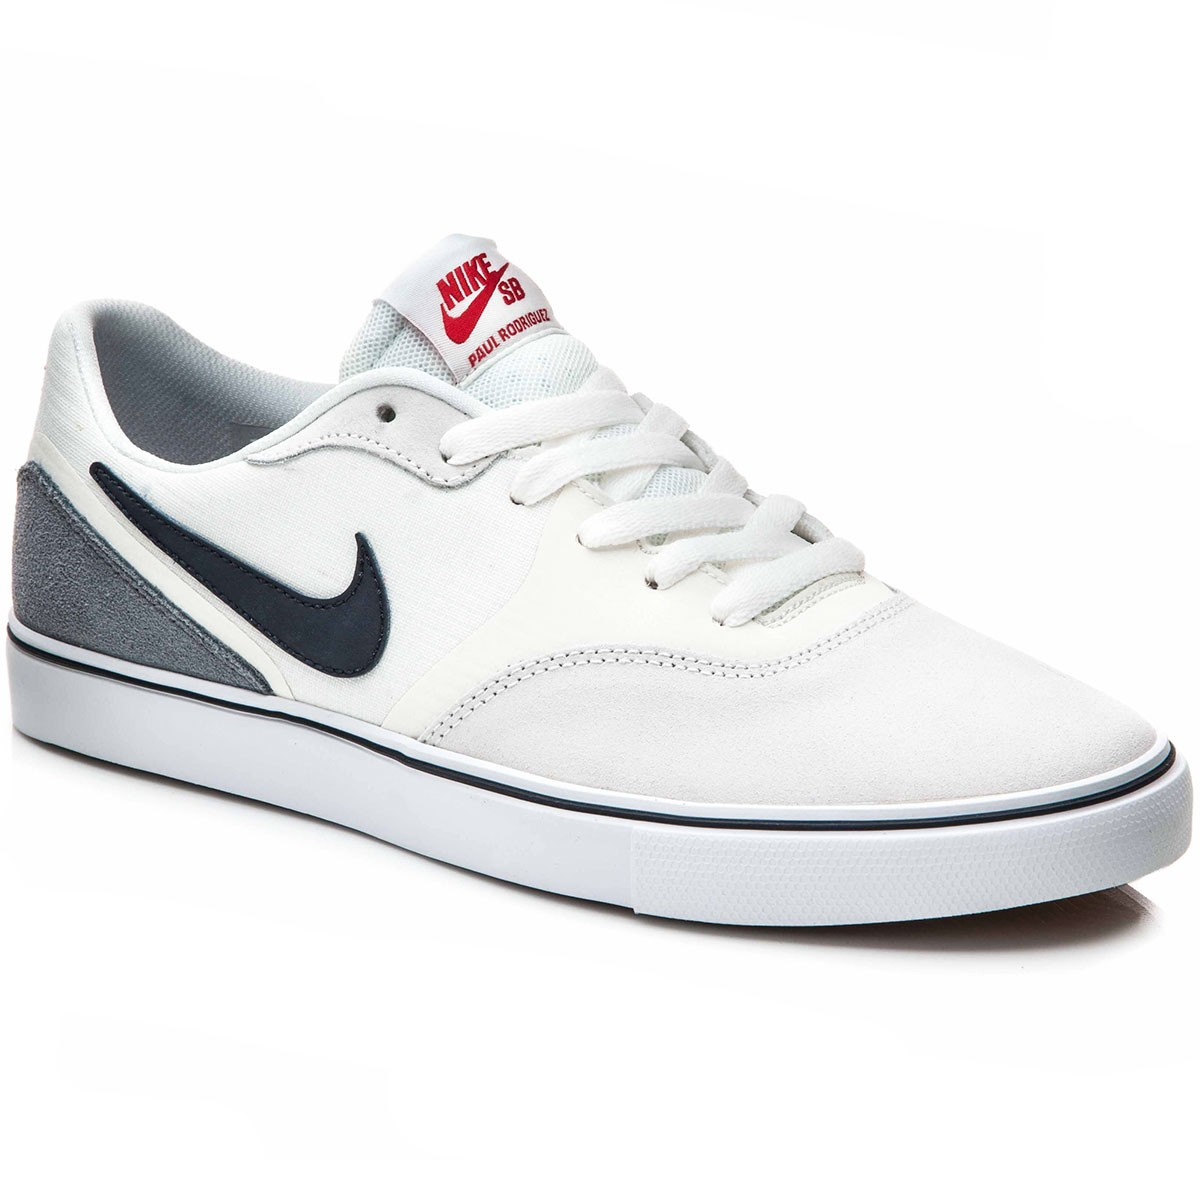 f532f998d027c1 Nike Paul Rodriguez 9 VR Shoes